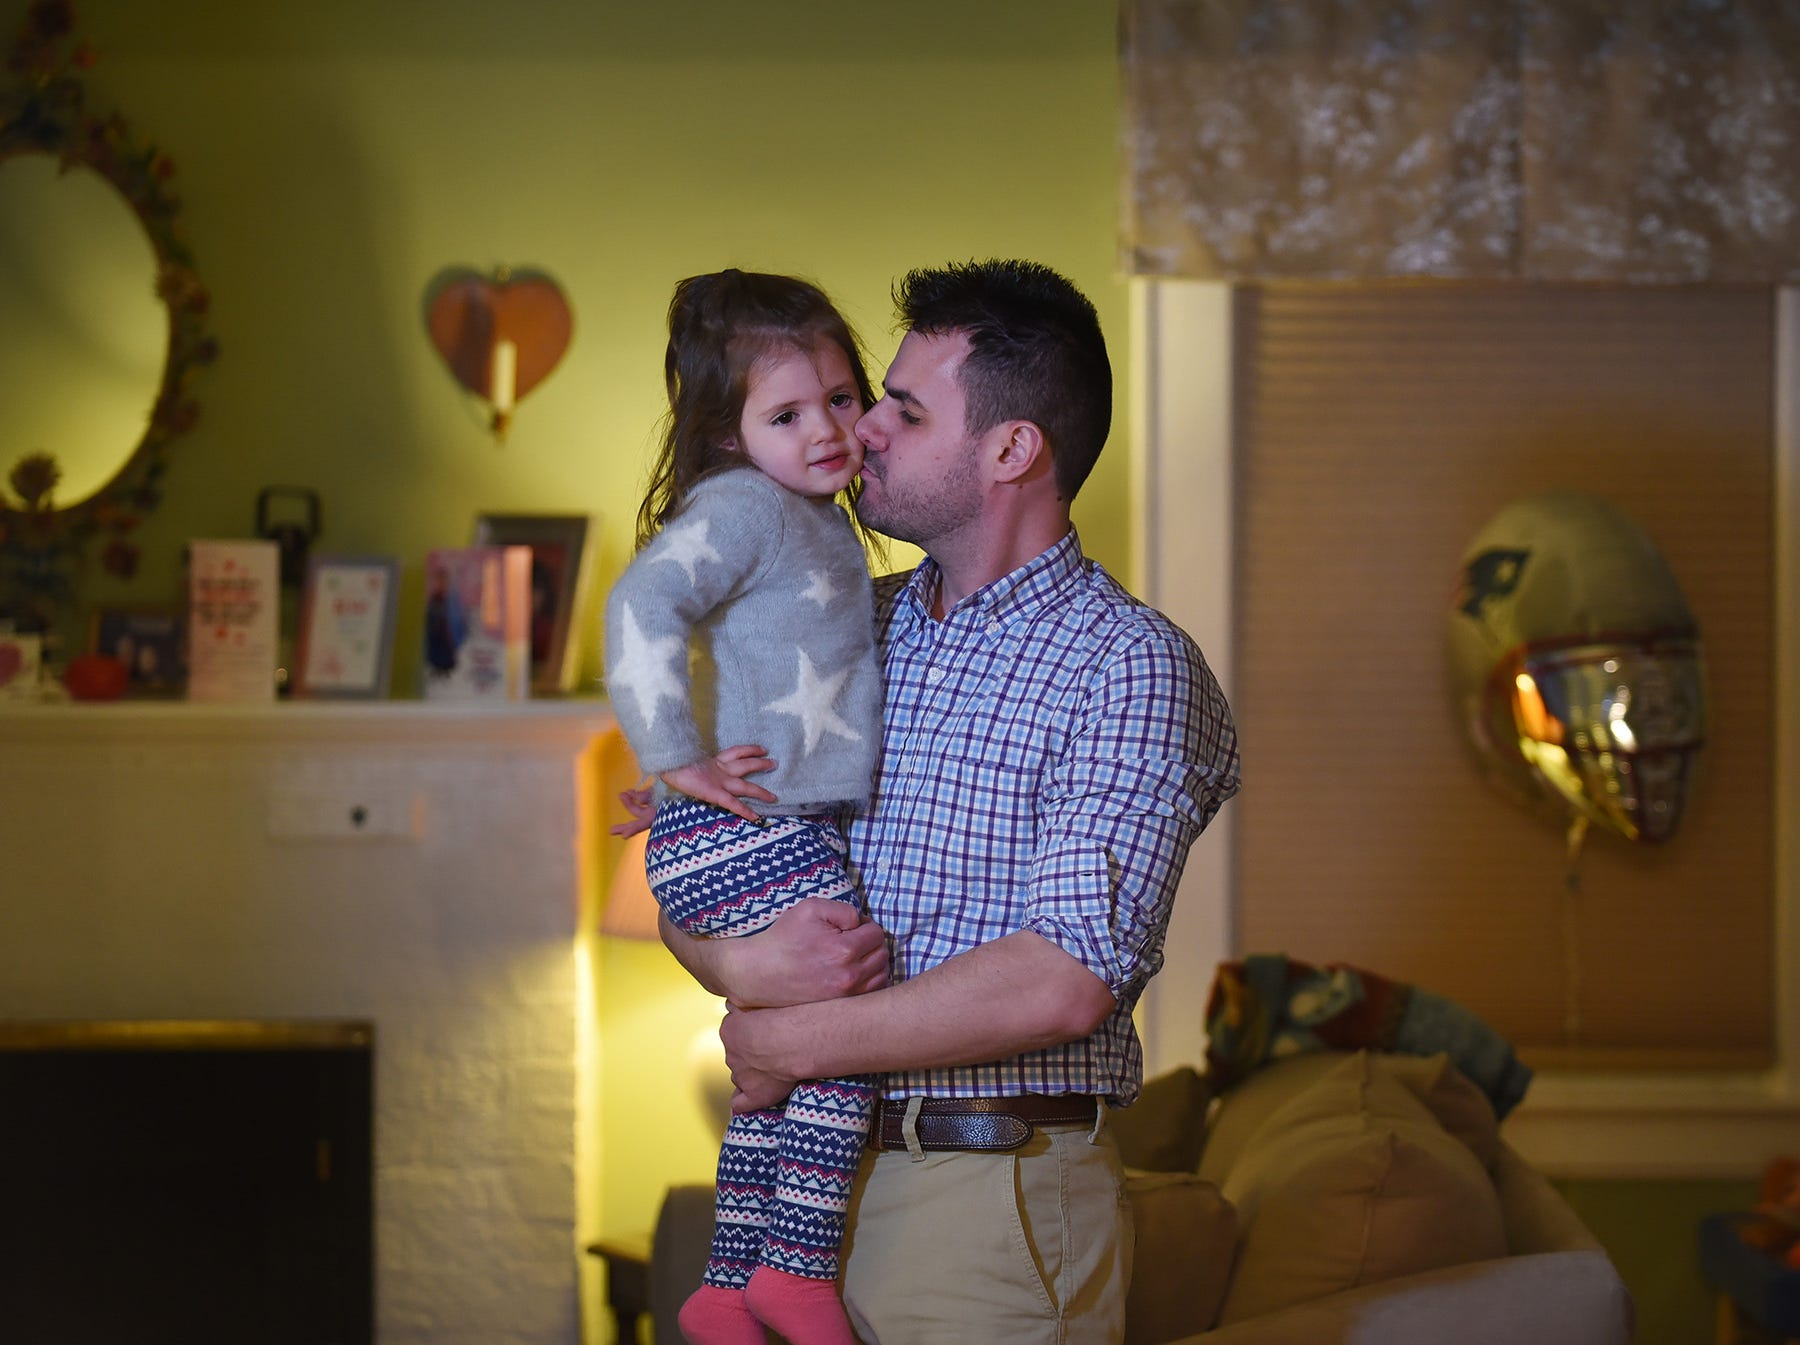 Photo of Jim Villanella (37) and her 2-year-old daughter Isabelle, at their home in Verona on 02/26/18. March 3rd will mark one year since the death of Megan Villanella in Verona. Megan was hit by a car while standing on the sidewalk on Lakeside Avenue in Verona. She was about seven months pregnant at the time.